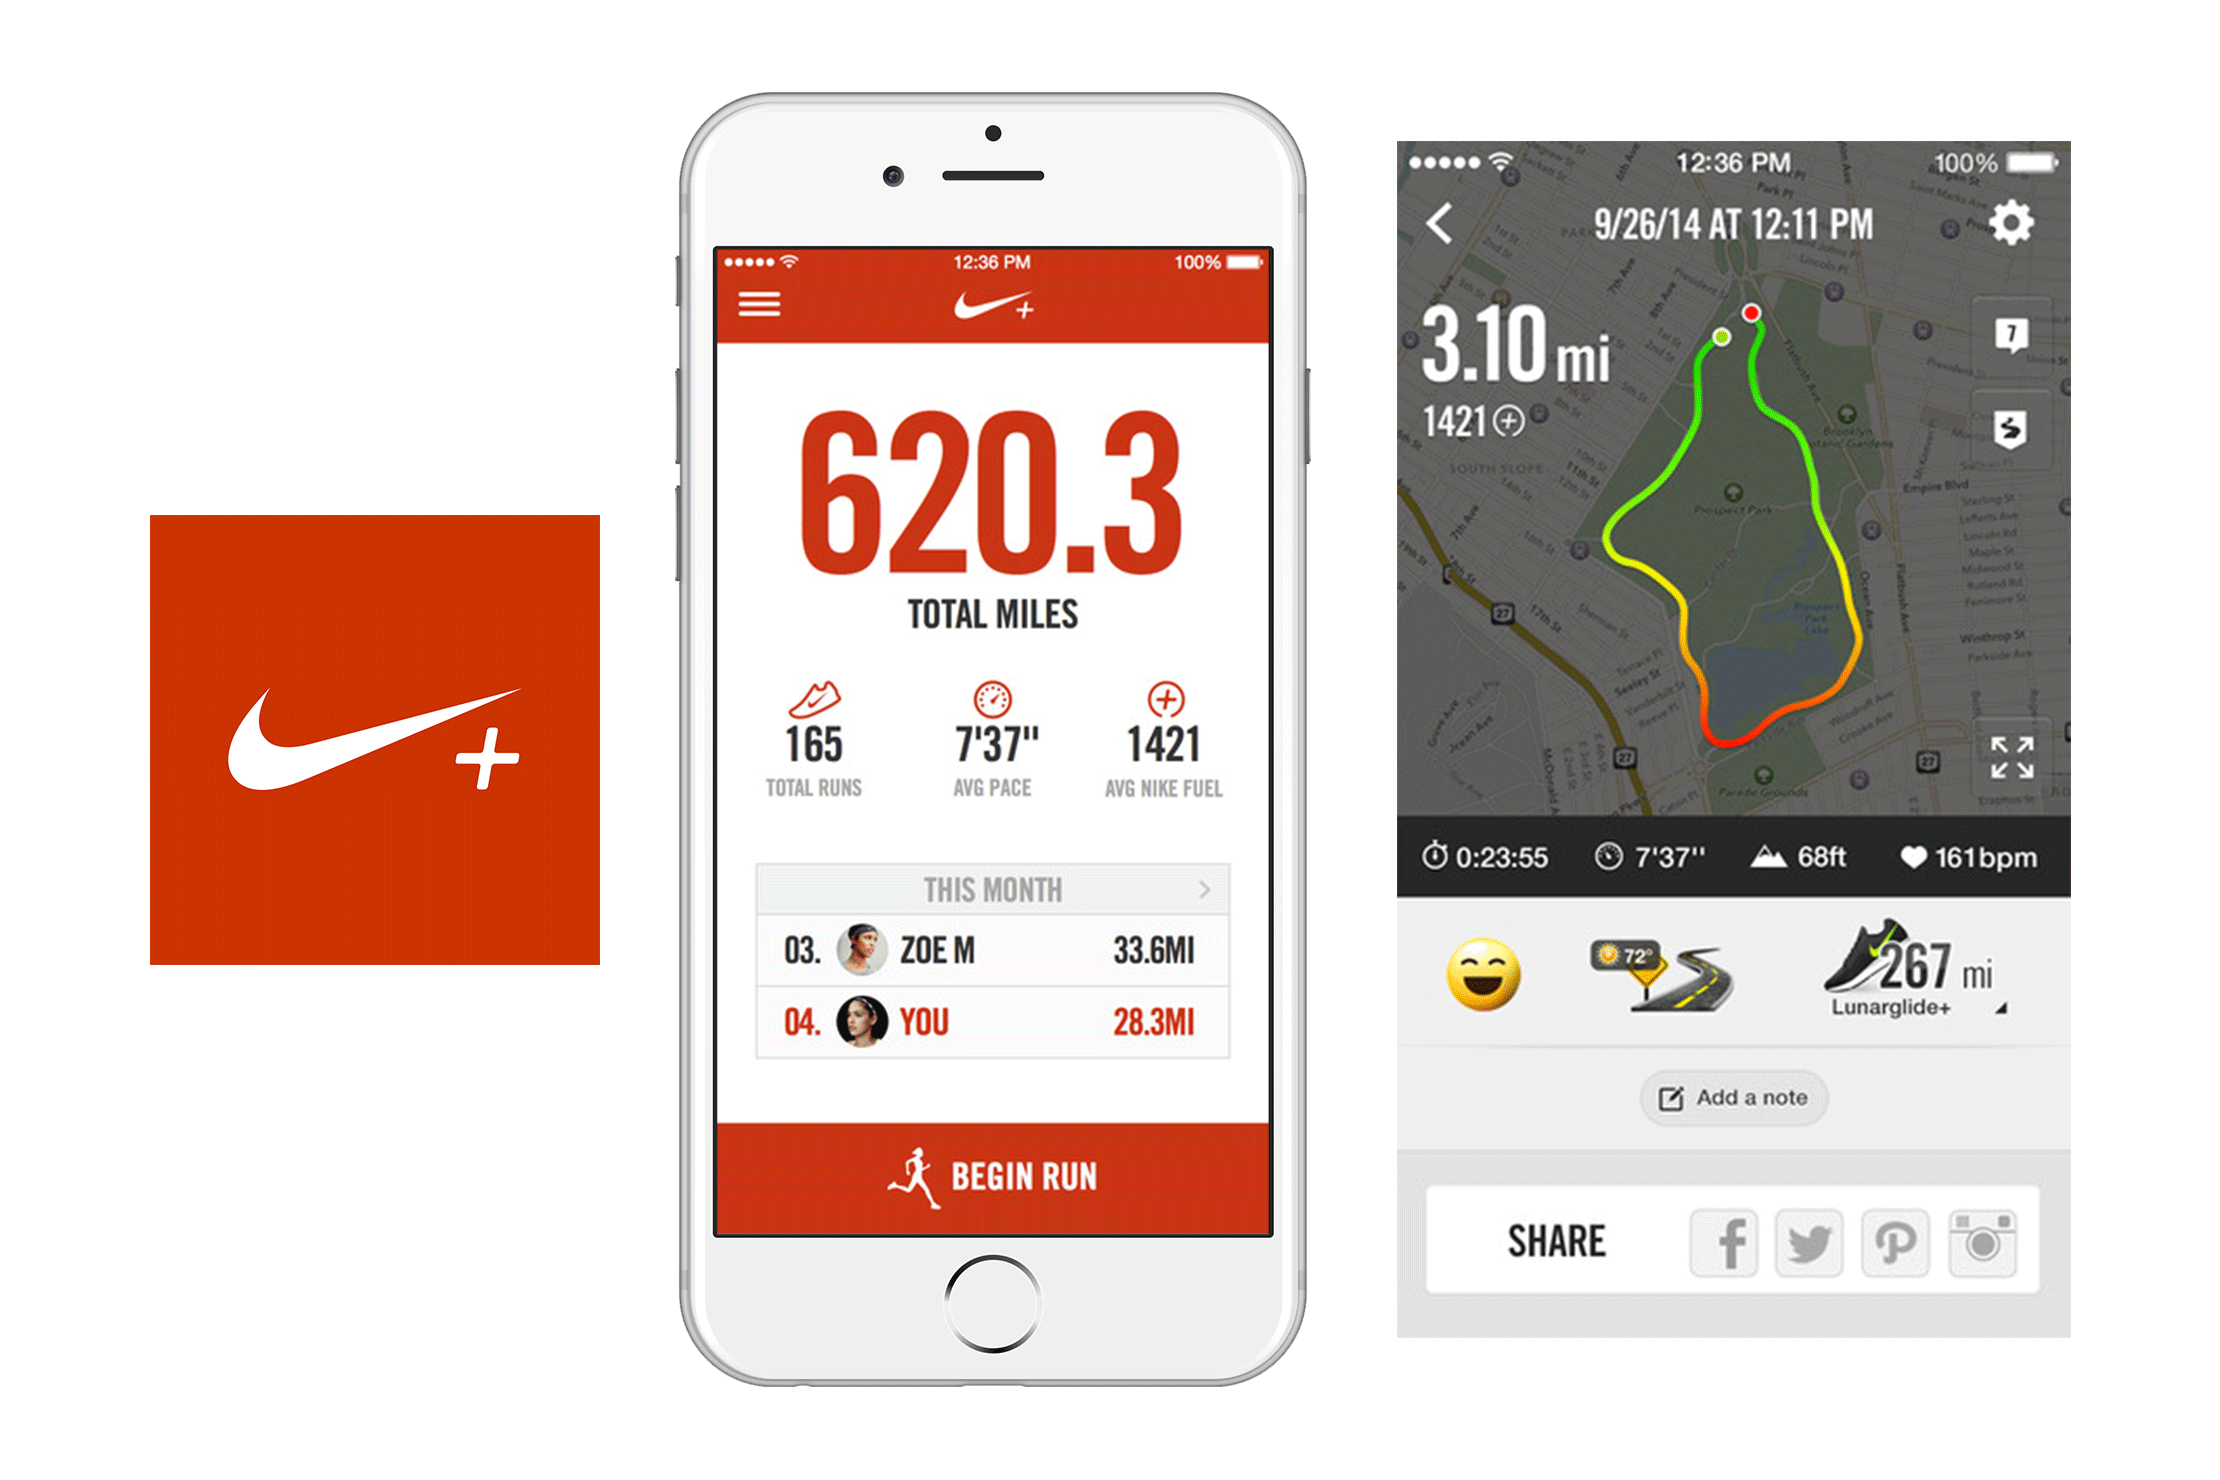 The 8 Best Running Apps to Buy in 2019 recommend